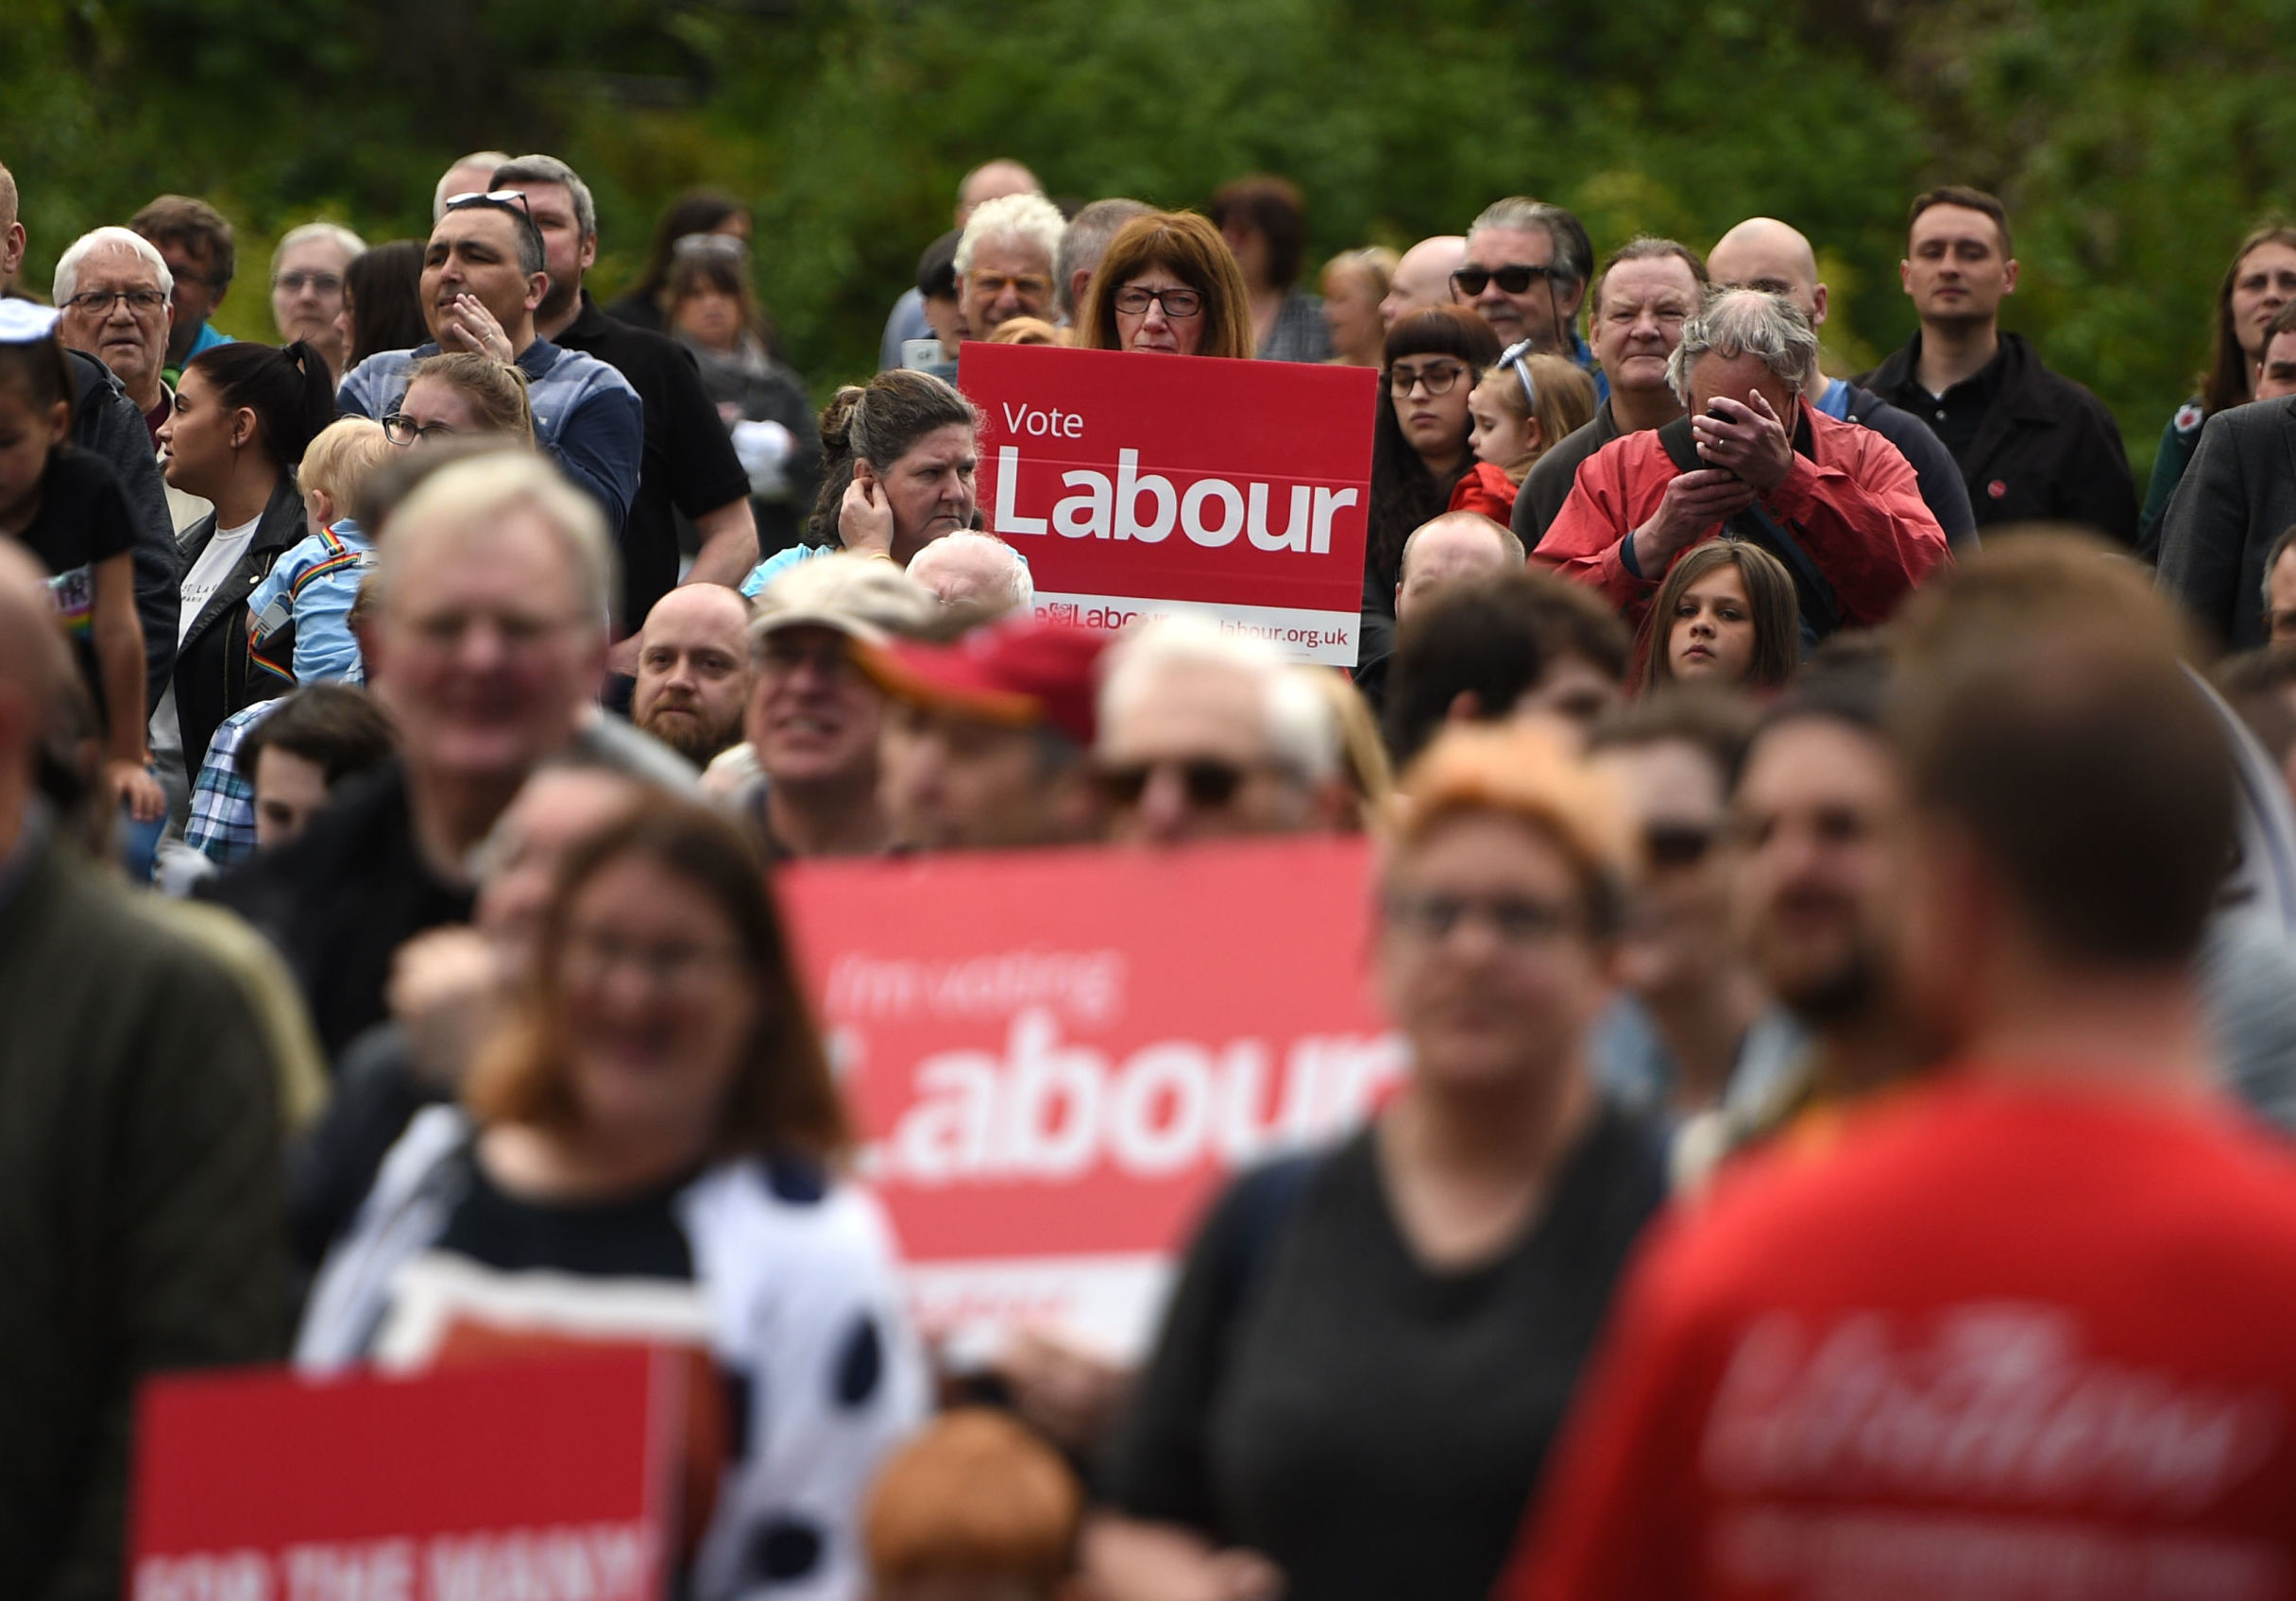 Supporters gather as Britain's opposition Labour party leader Jeremy Corbyn attends a European Parliament election campaign rally in Bootle, north England on May 18, 2019.